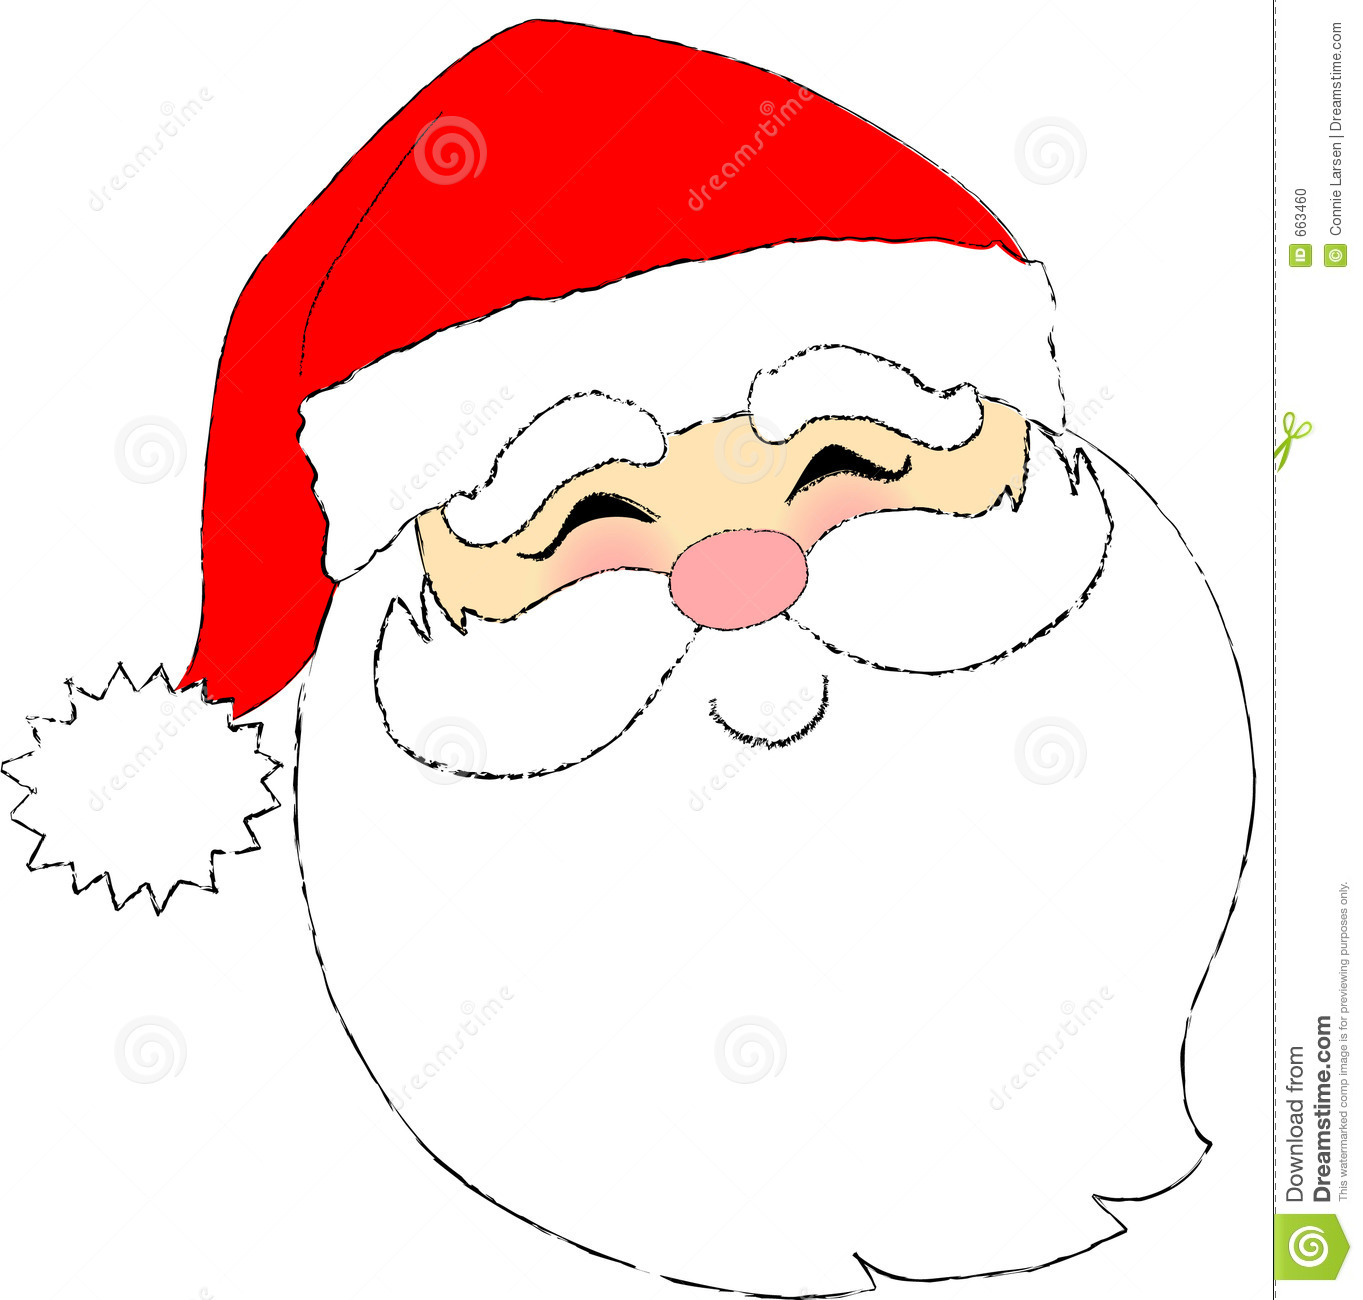 Cartoon-type illustration of a Santa face.: www.dreamstime.com/stock-photo-santa-face-image663460